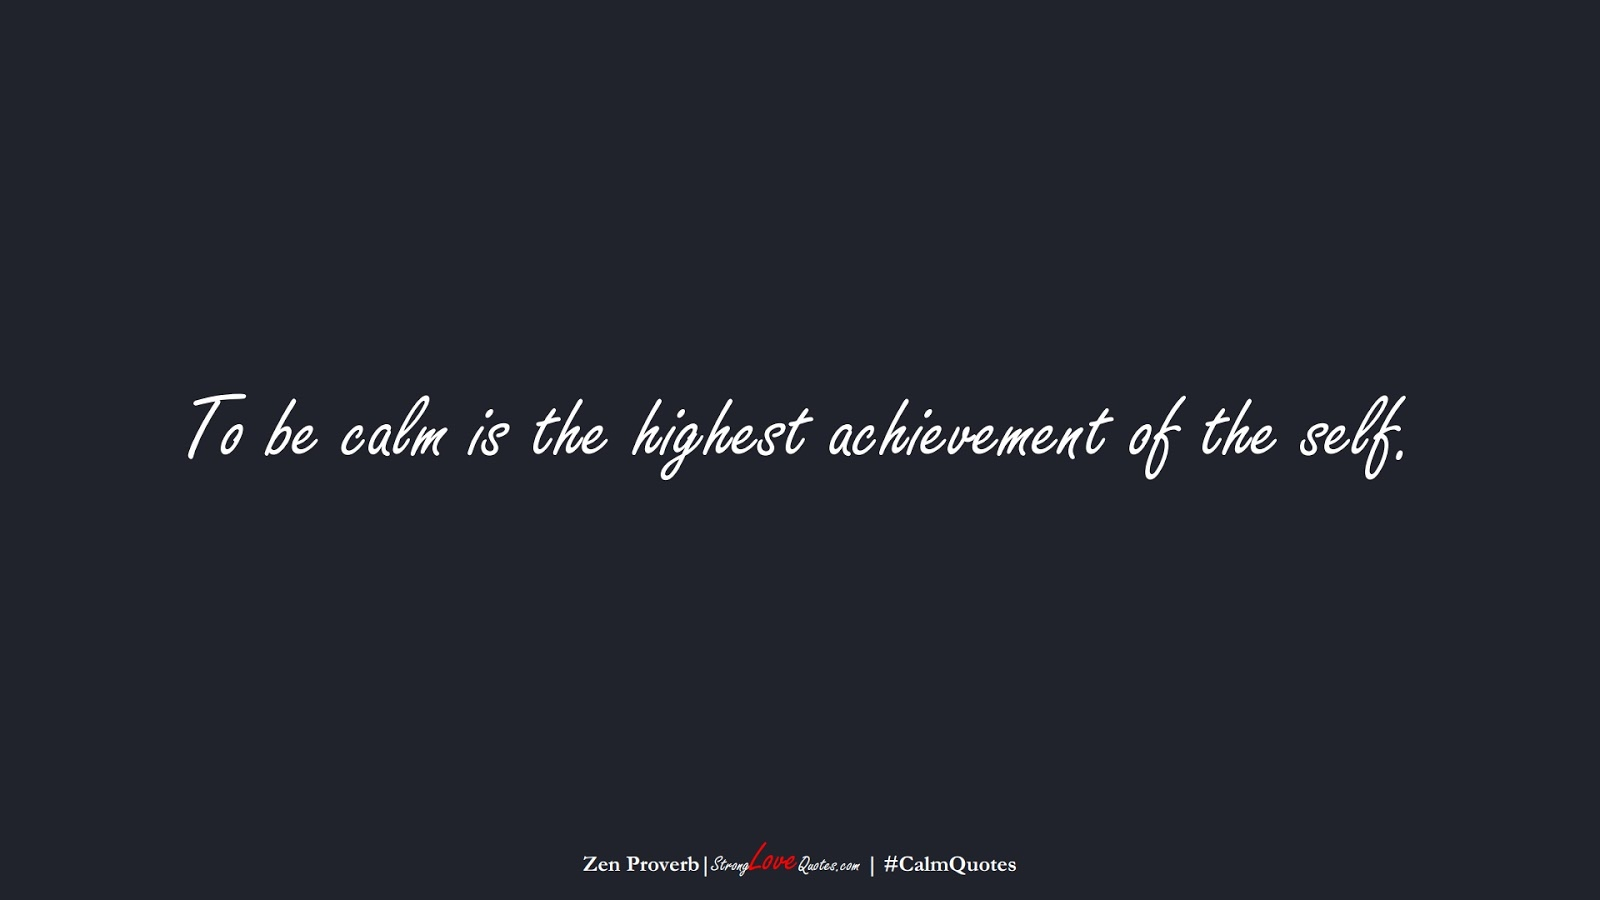 To be calm is the highest achievement of the self. (Zen Proverb);  #CalmQuotes